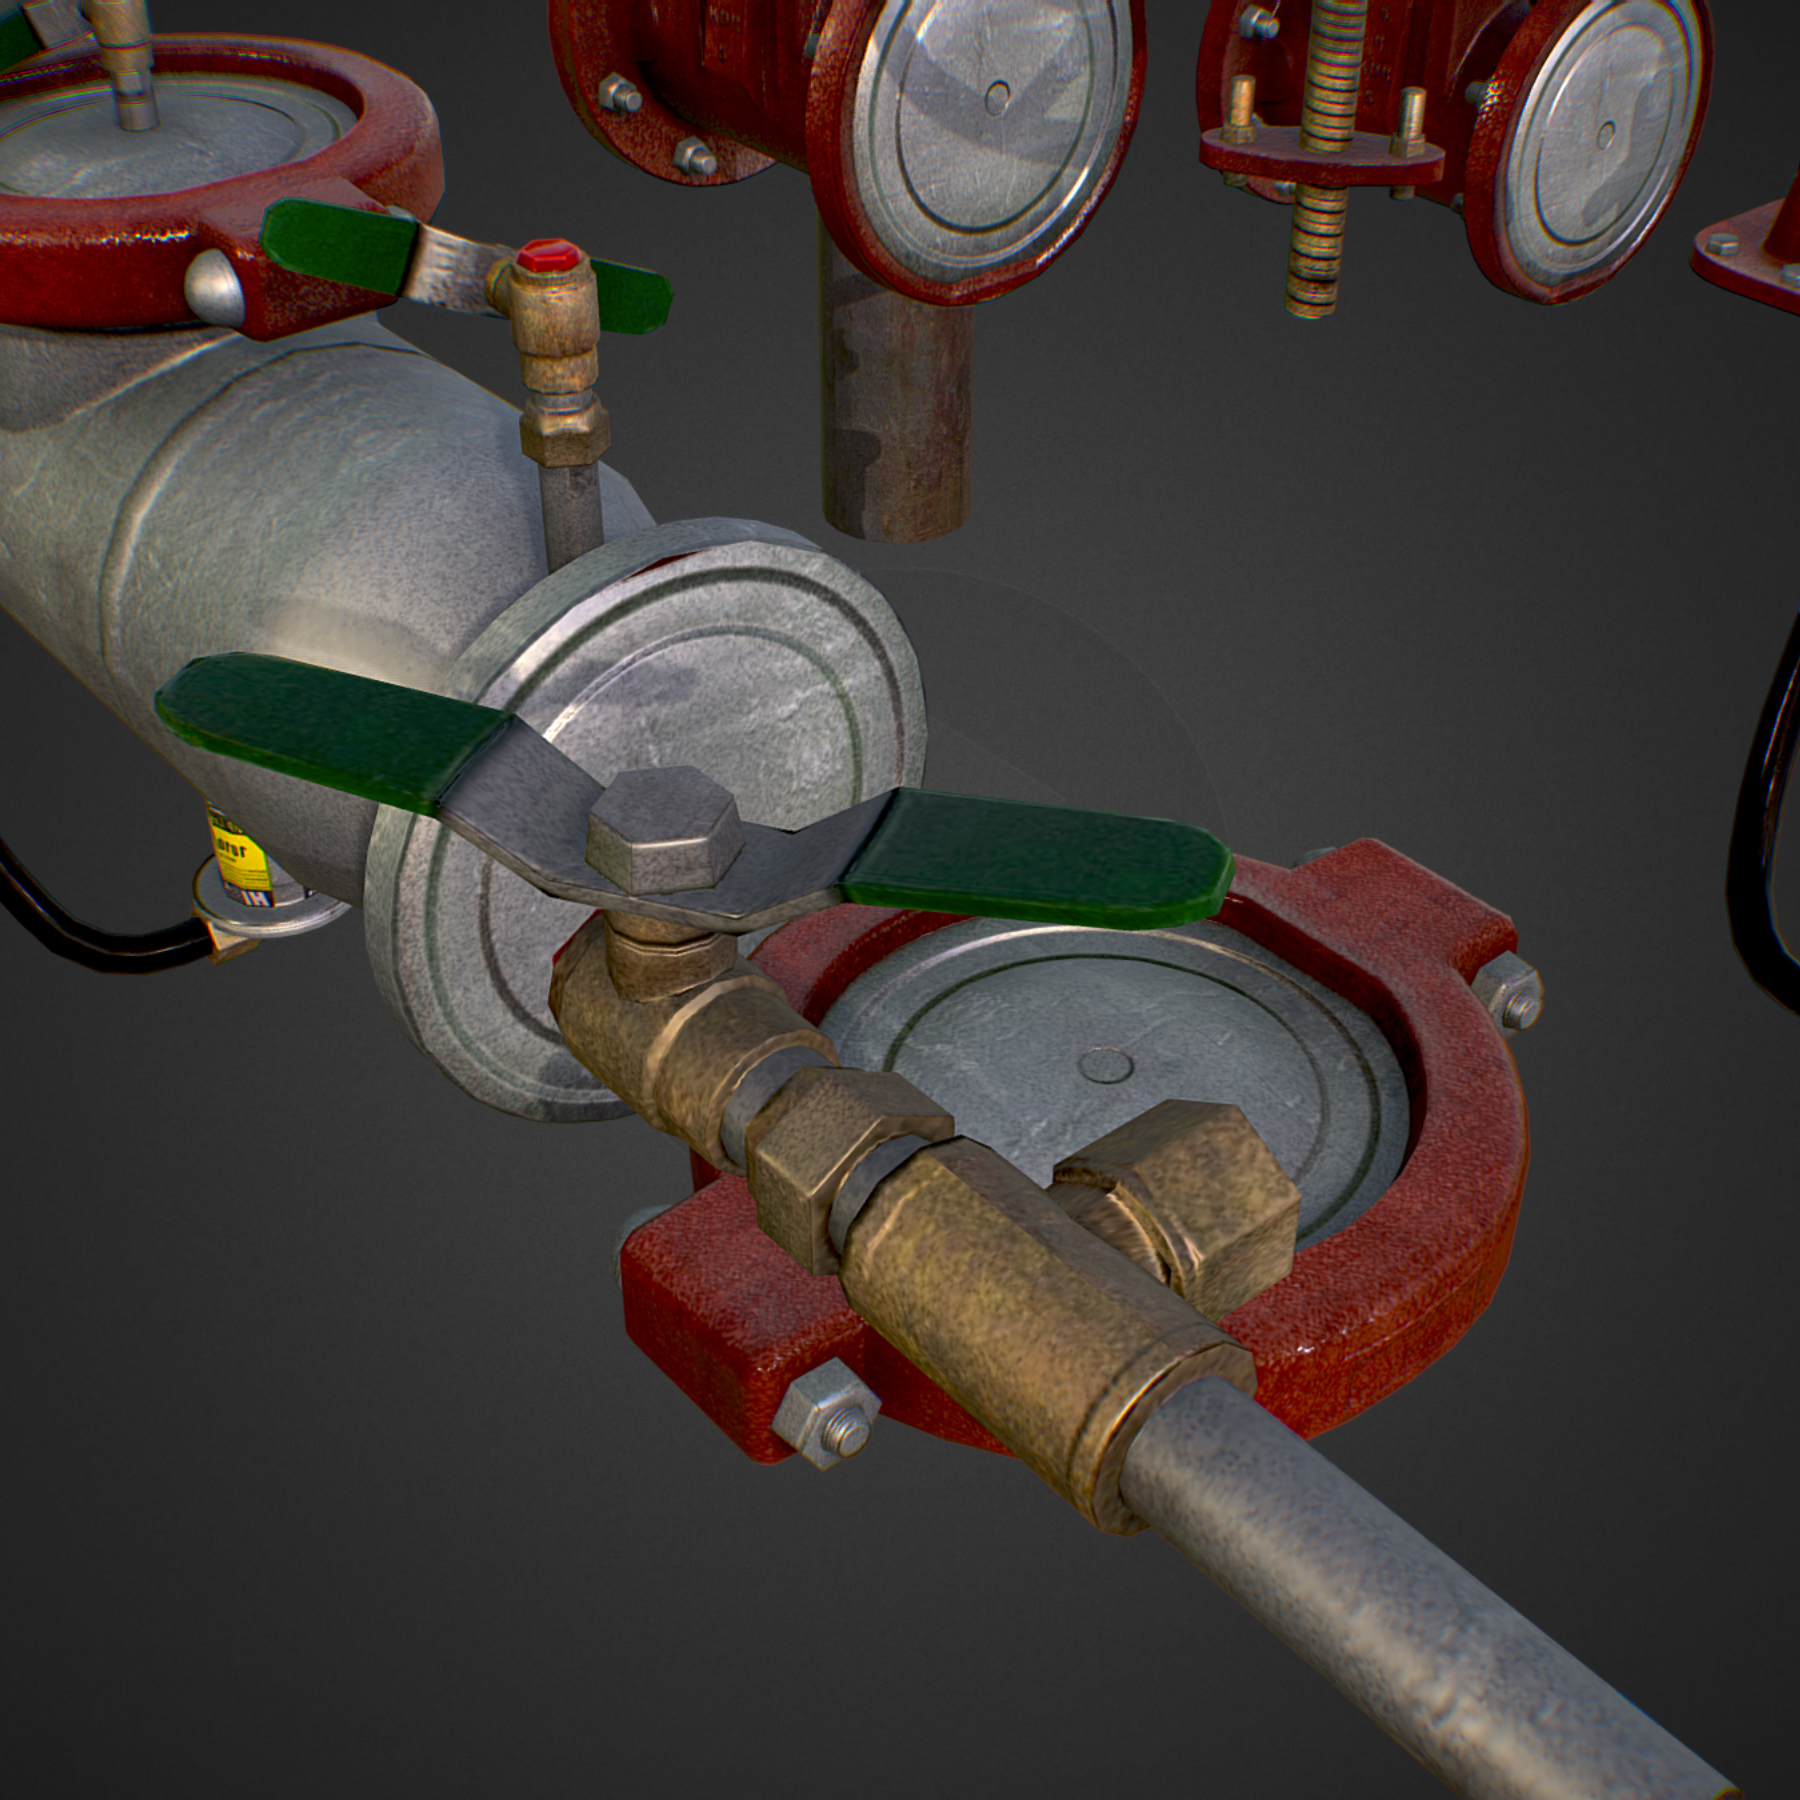 low poly game backflow water pipe constructor 3d model max  fbx ma mb tga targa icb vda vst pix obj 272472